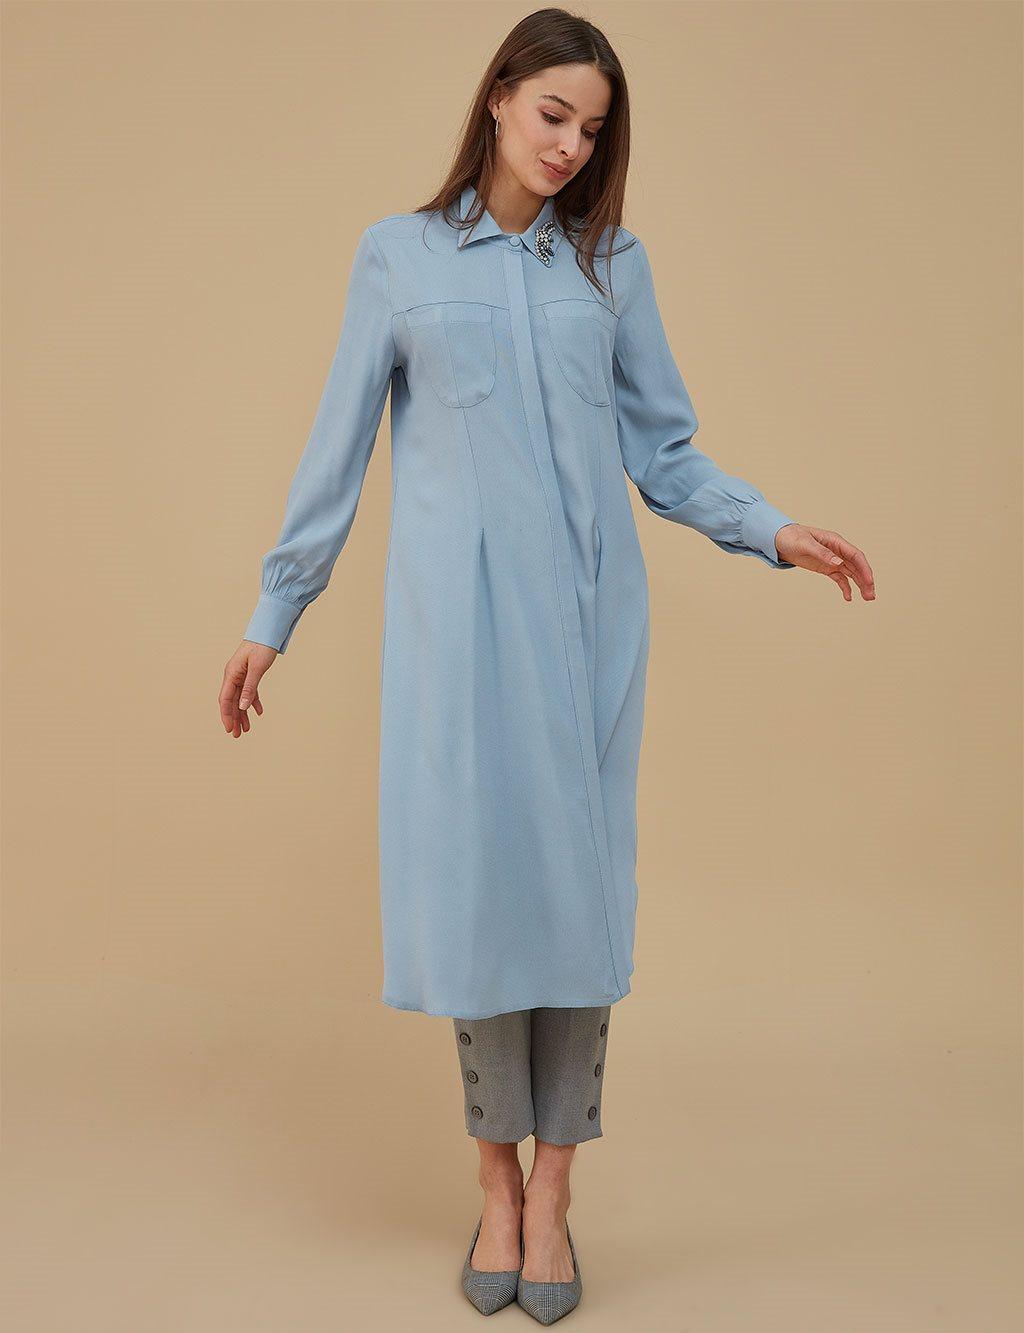 Collar Detailed Tunic A9 21152 Blue